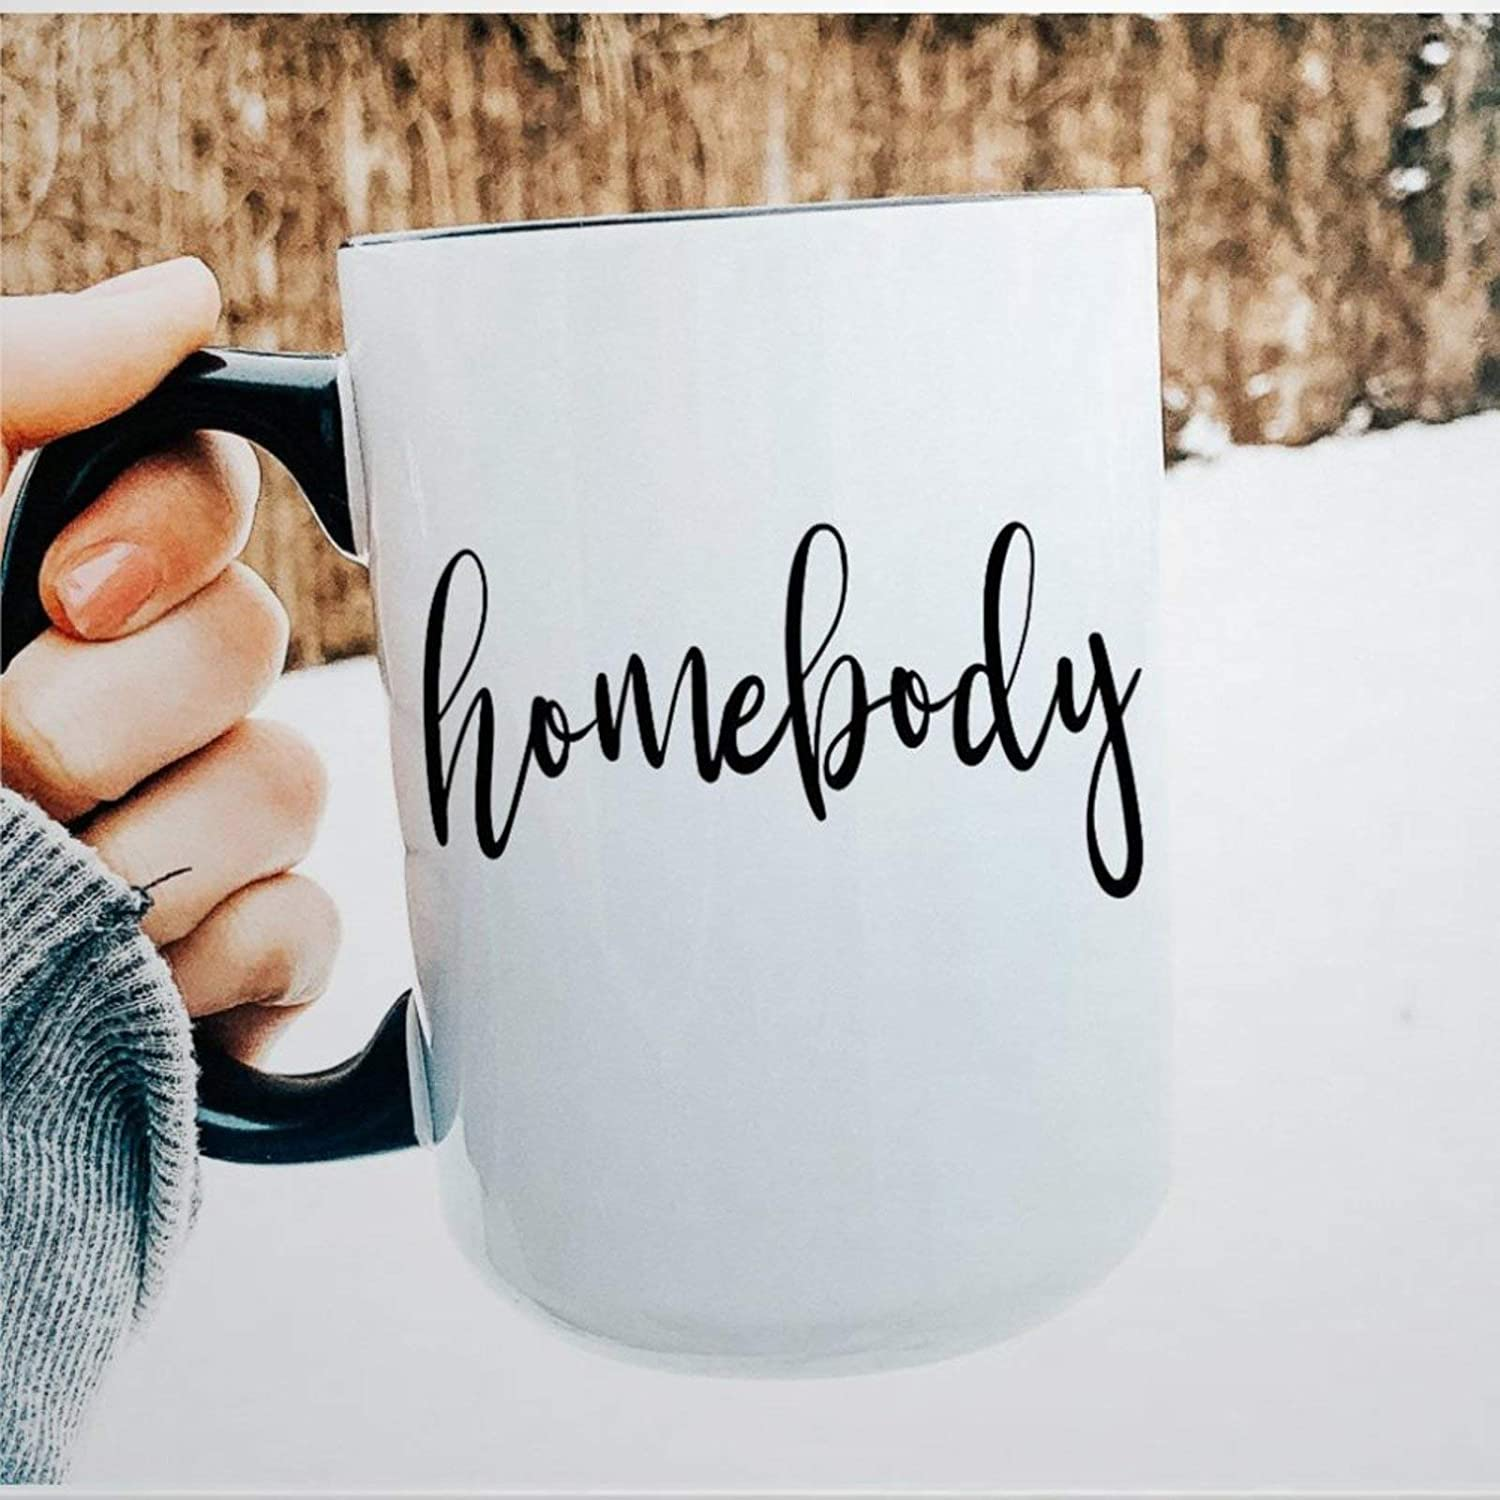 Homebody Present, Homebody Mug Coffee Mug Best Friend Present, Lets Stay Home Novelty Ceramic Tea Cup Christmas Birthday Present for Men Women